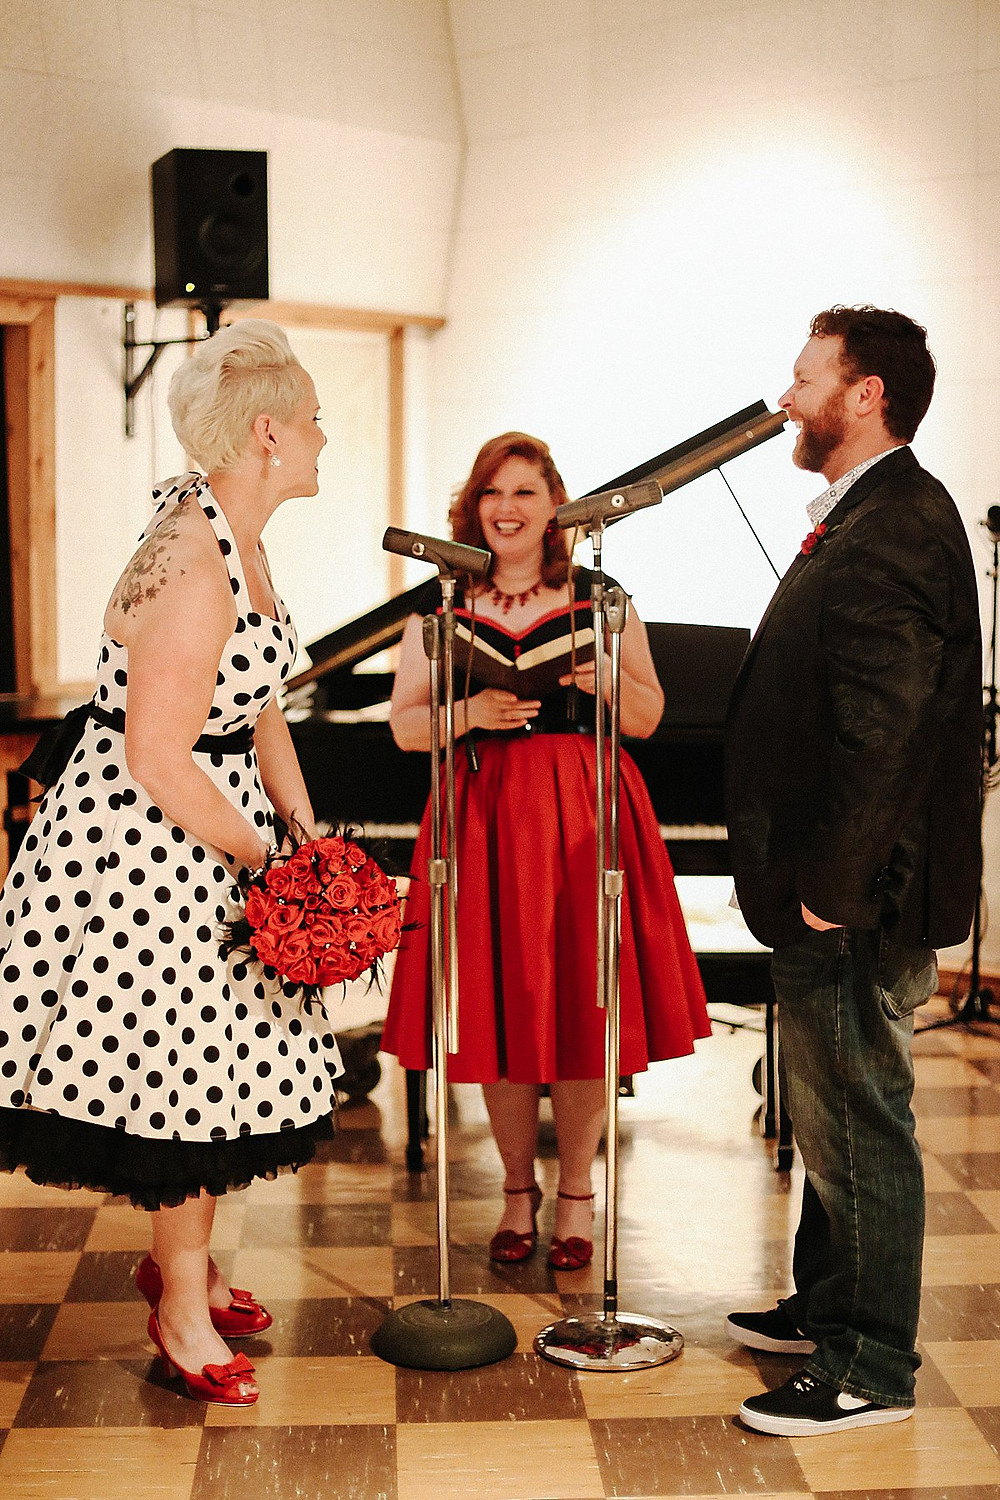 RCA Studio B Wedding